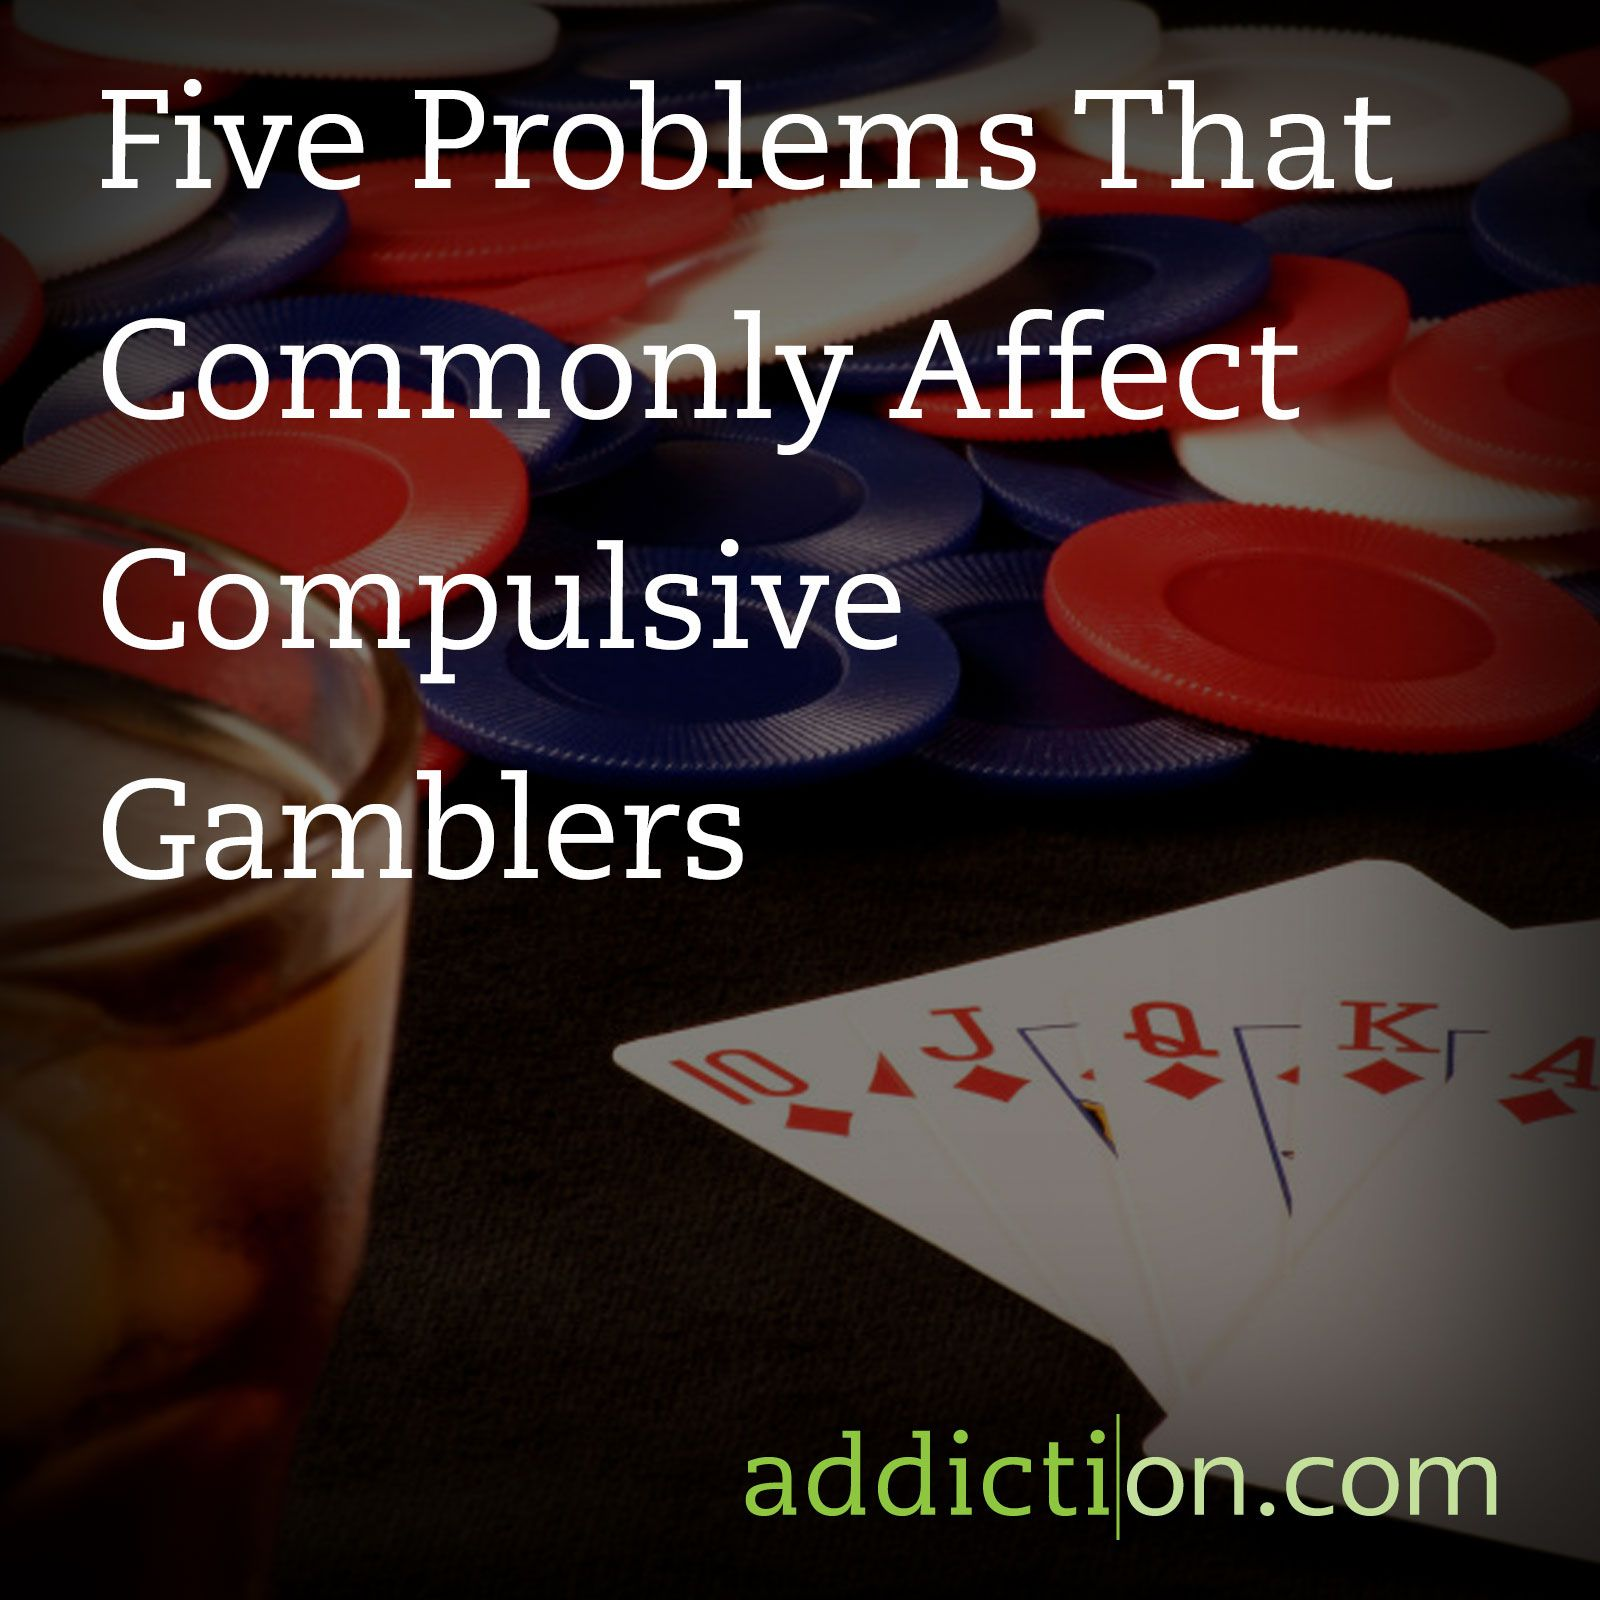 Five Problems That monly Affect pulsive Gamblers